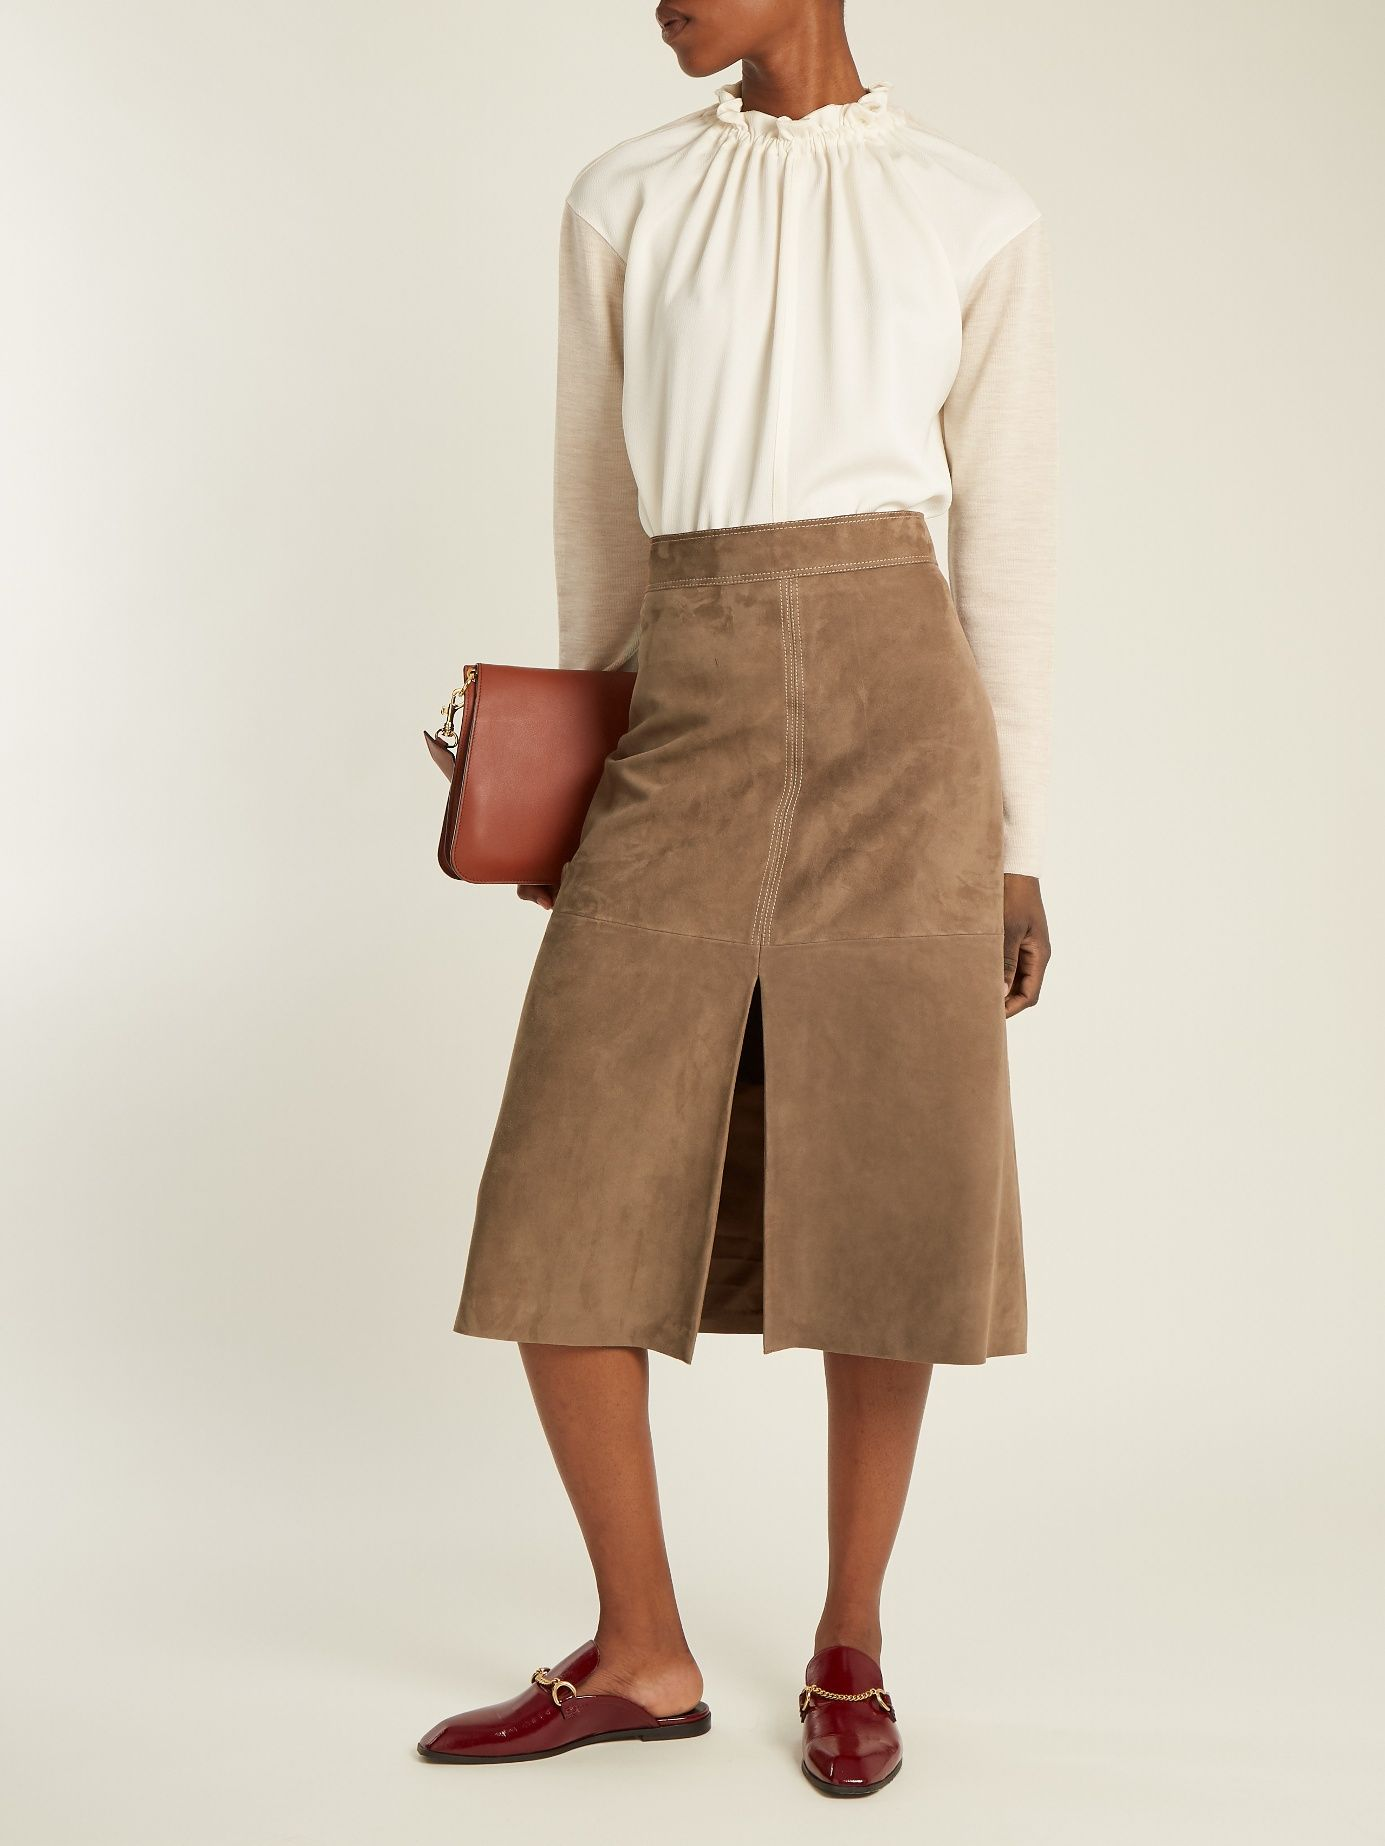 202a48f46704 Click here to buy Weekend Max Mara Zadar skirt at MATCHESFASHION.COM ...